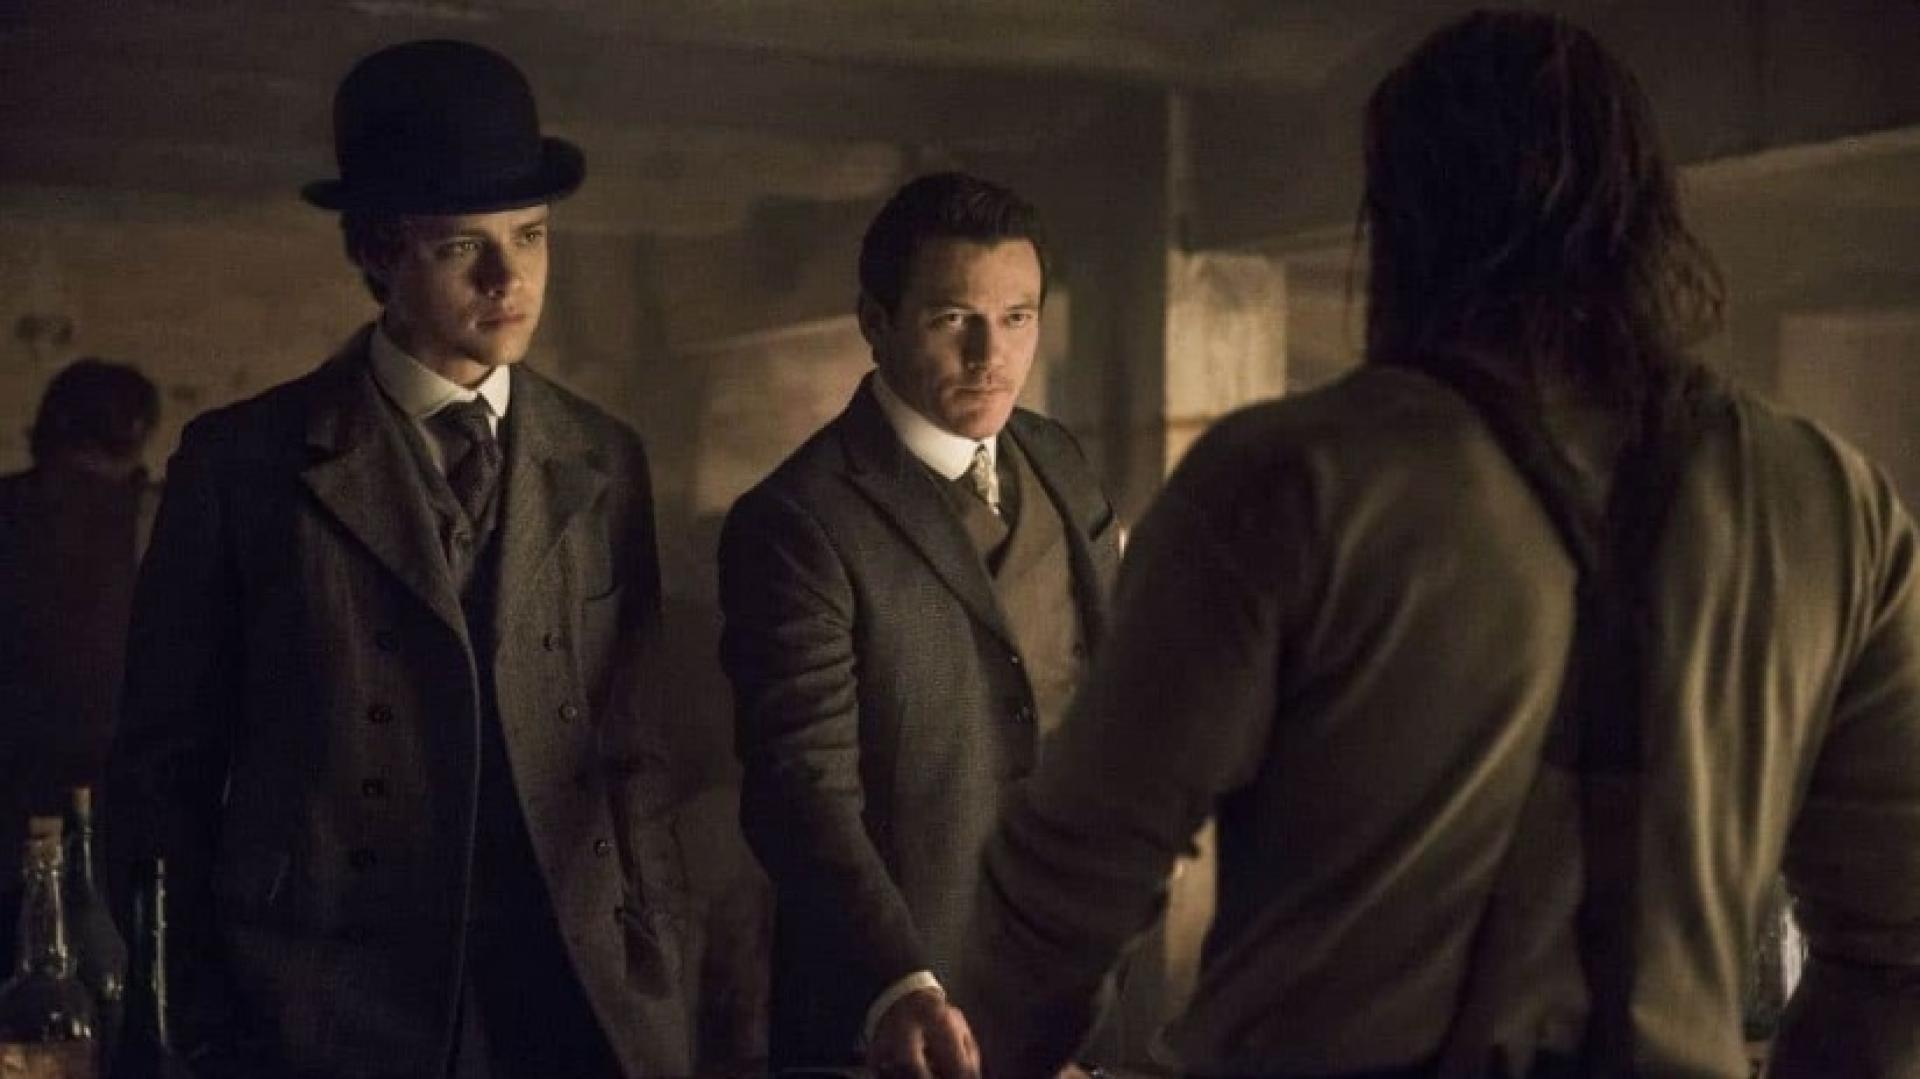 the_alienist1x10_4_kep